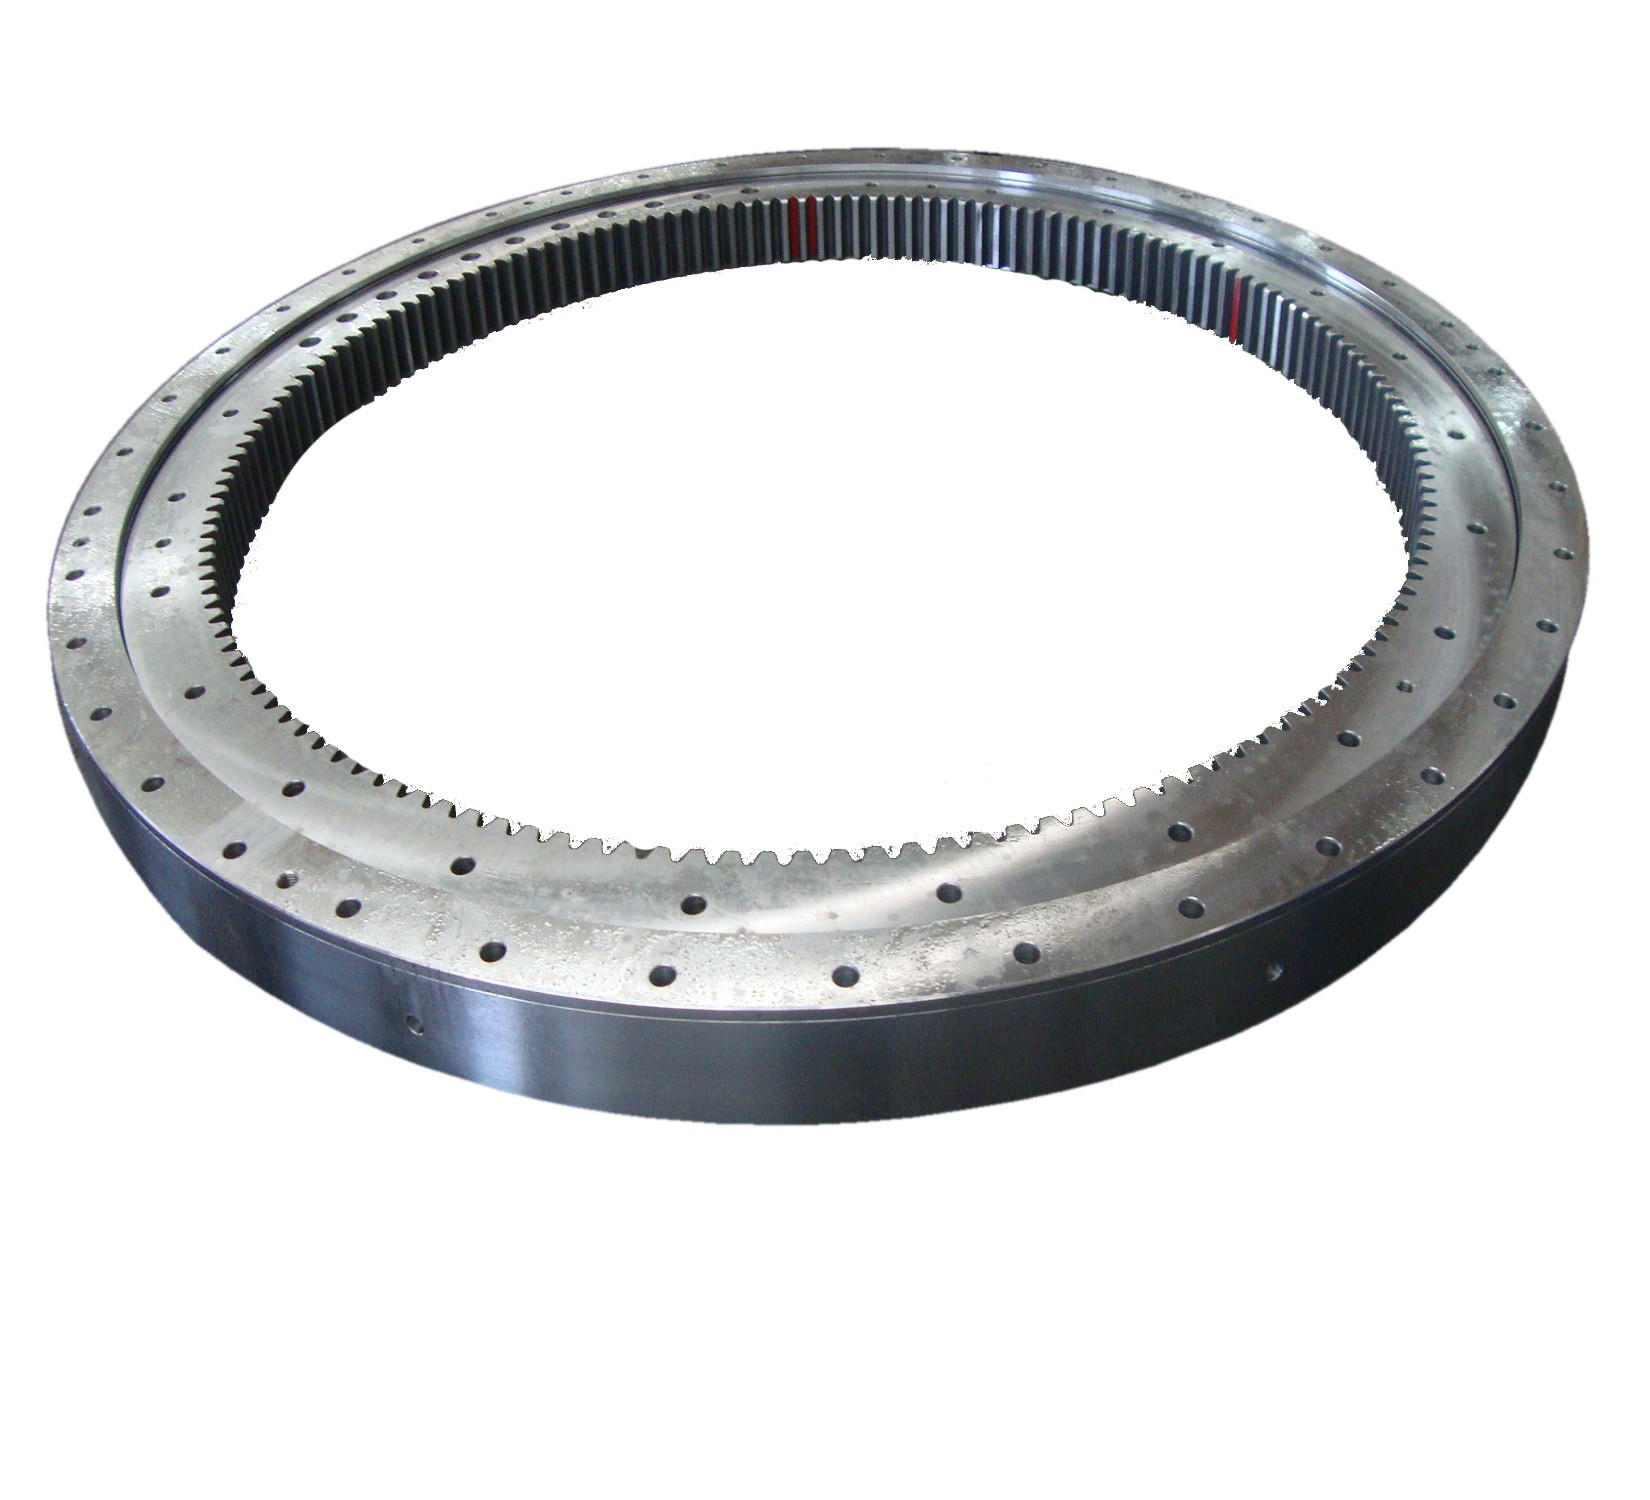 Heavy Duty Turntable Bearings For Tunnel Boring Machine Manufacturers, Heavy Duty Turntable Bearings For Tunnel Boring Machine Factory, Supply Heavy Duty Turntable Bearings For Tunnel Boring Machine